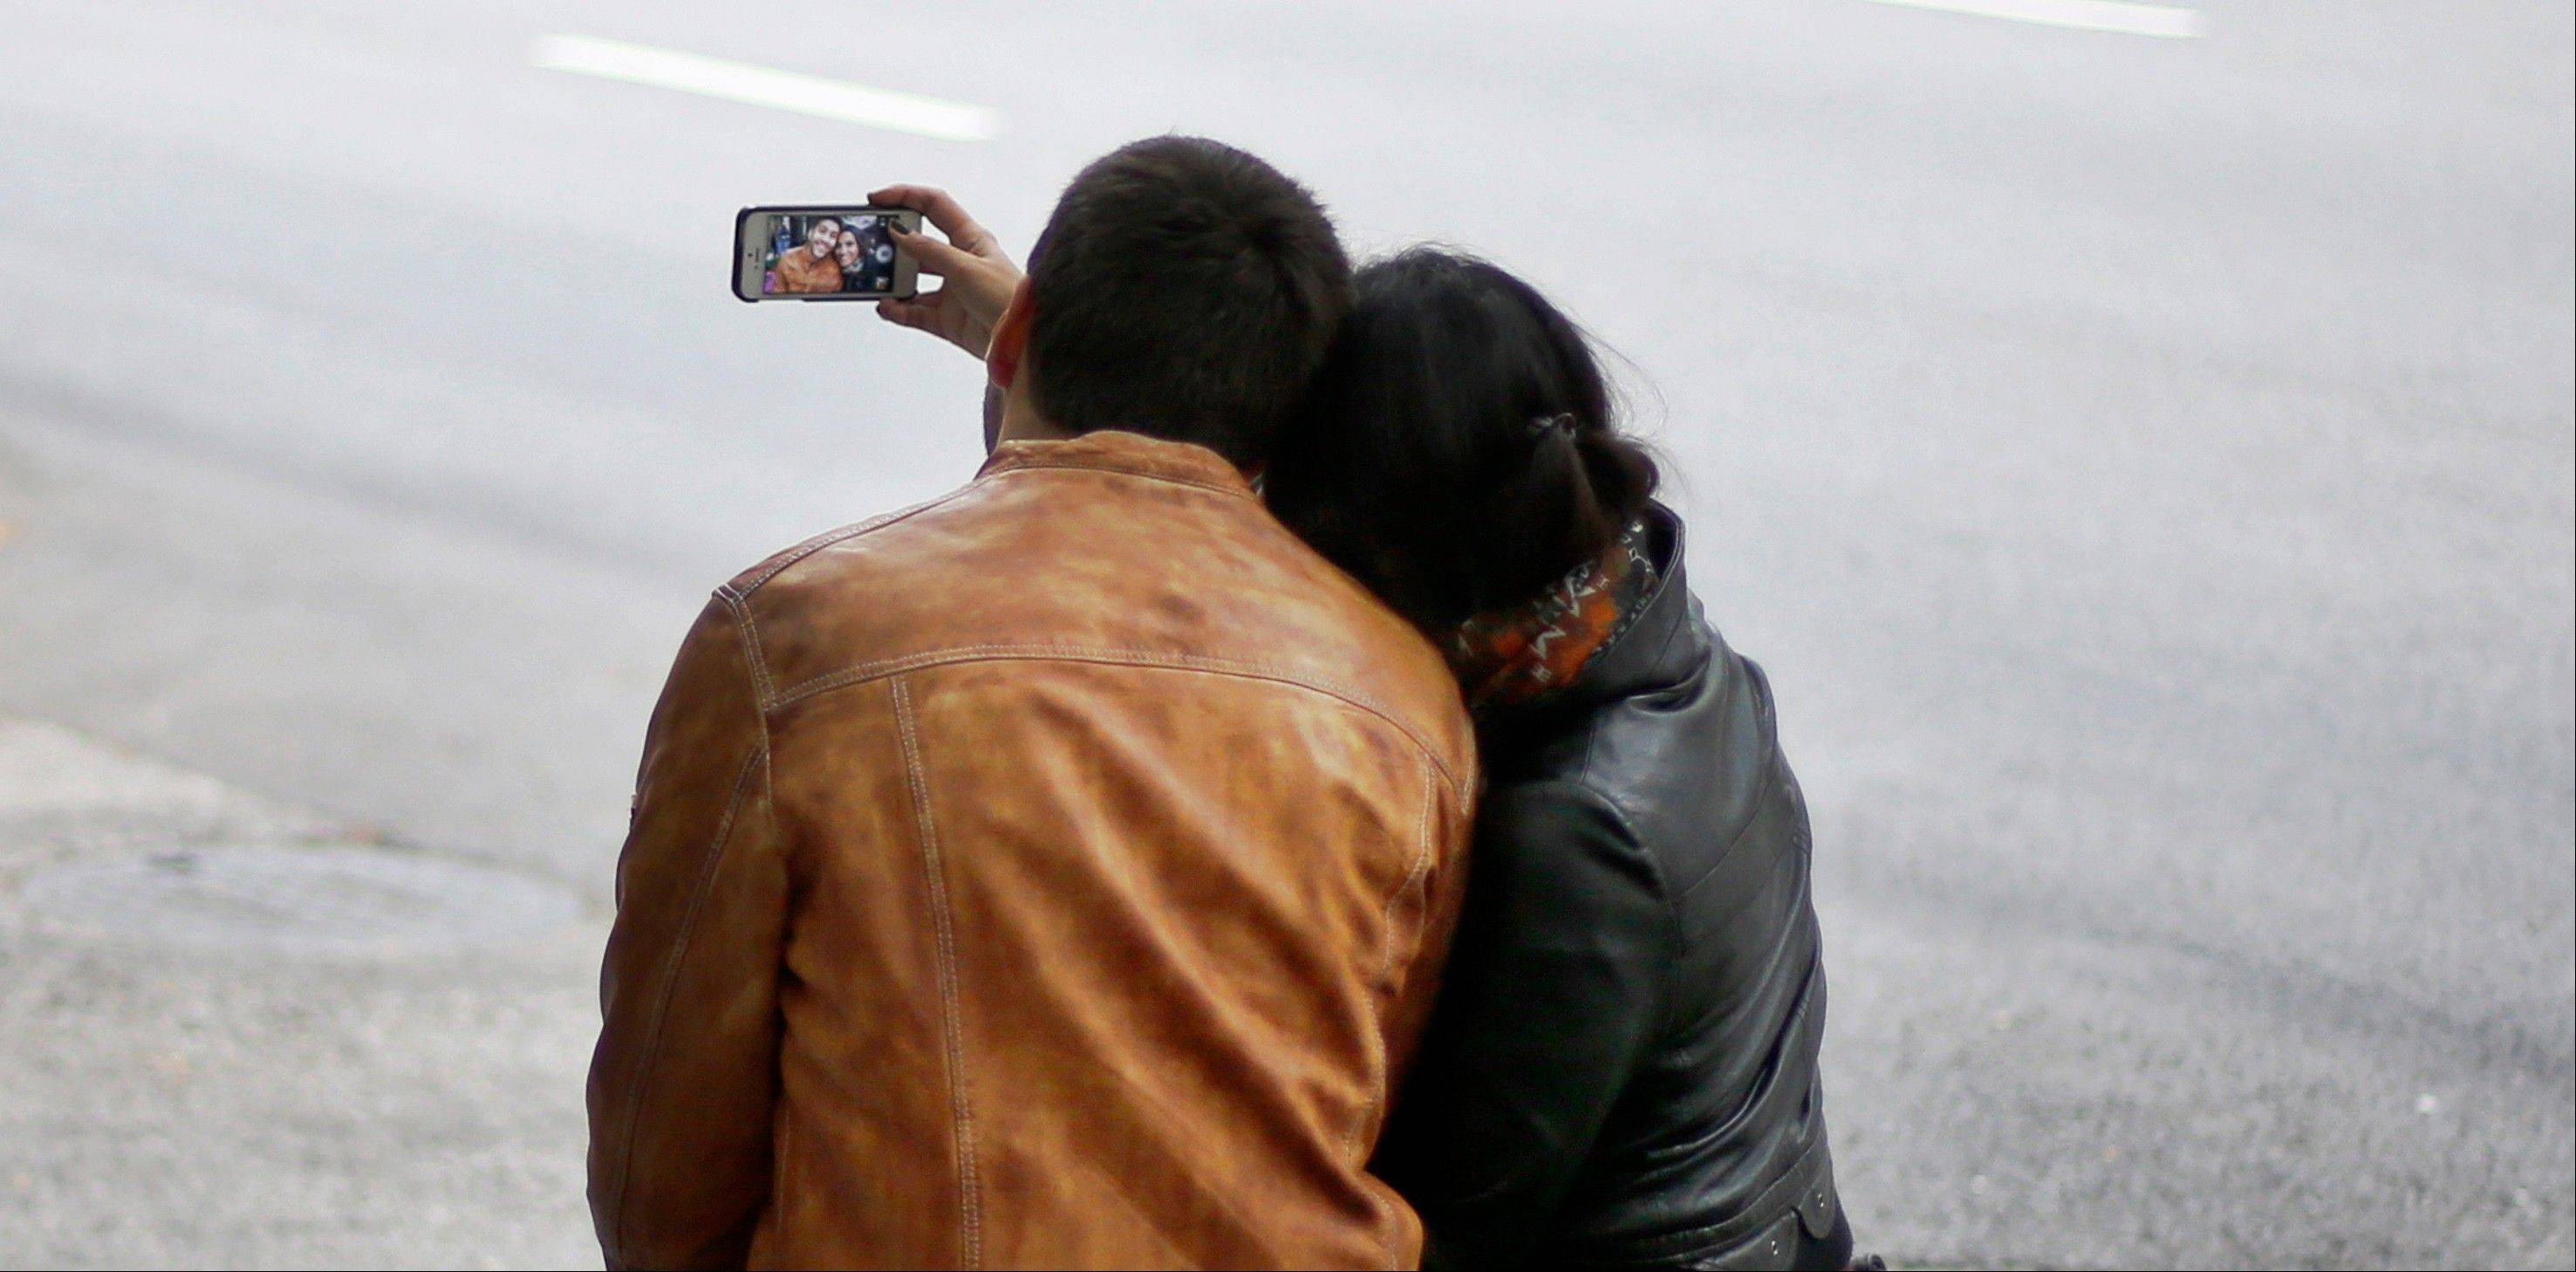 Serkan Ozsarac uses his cellphone camera with girlfriend Beyza Buyuker in Chicago. Competition is more intense than ever in the camera phone market, which means consumers have more choices than ever.